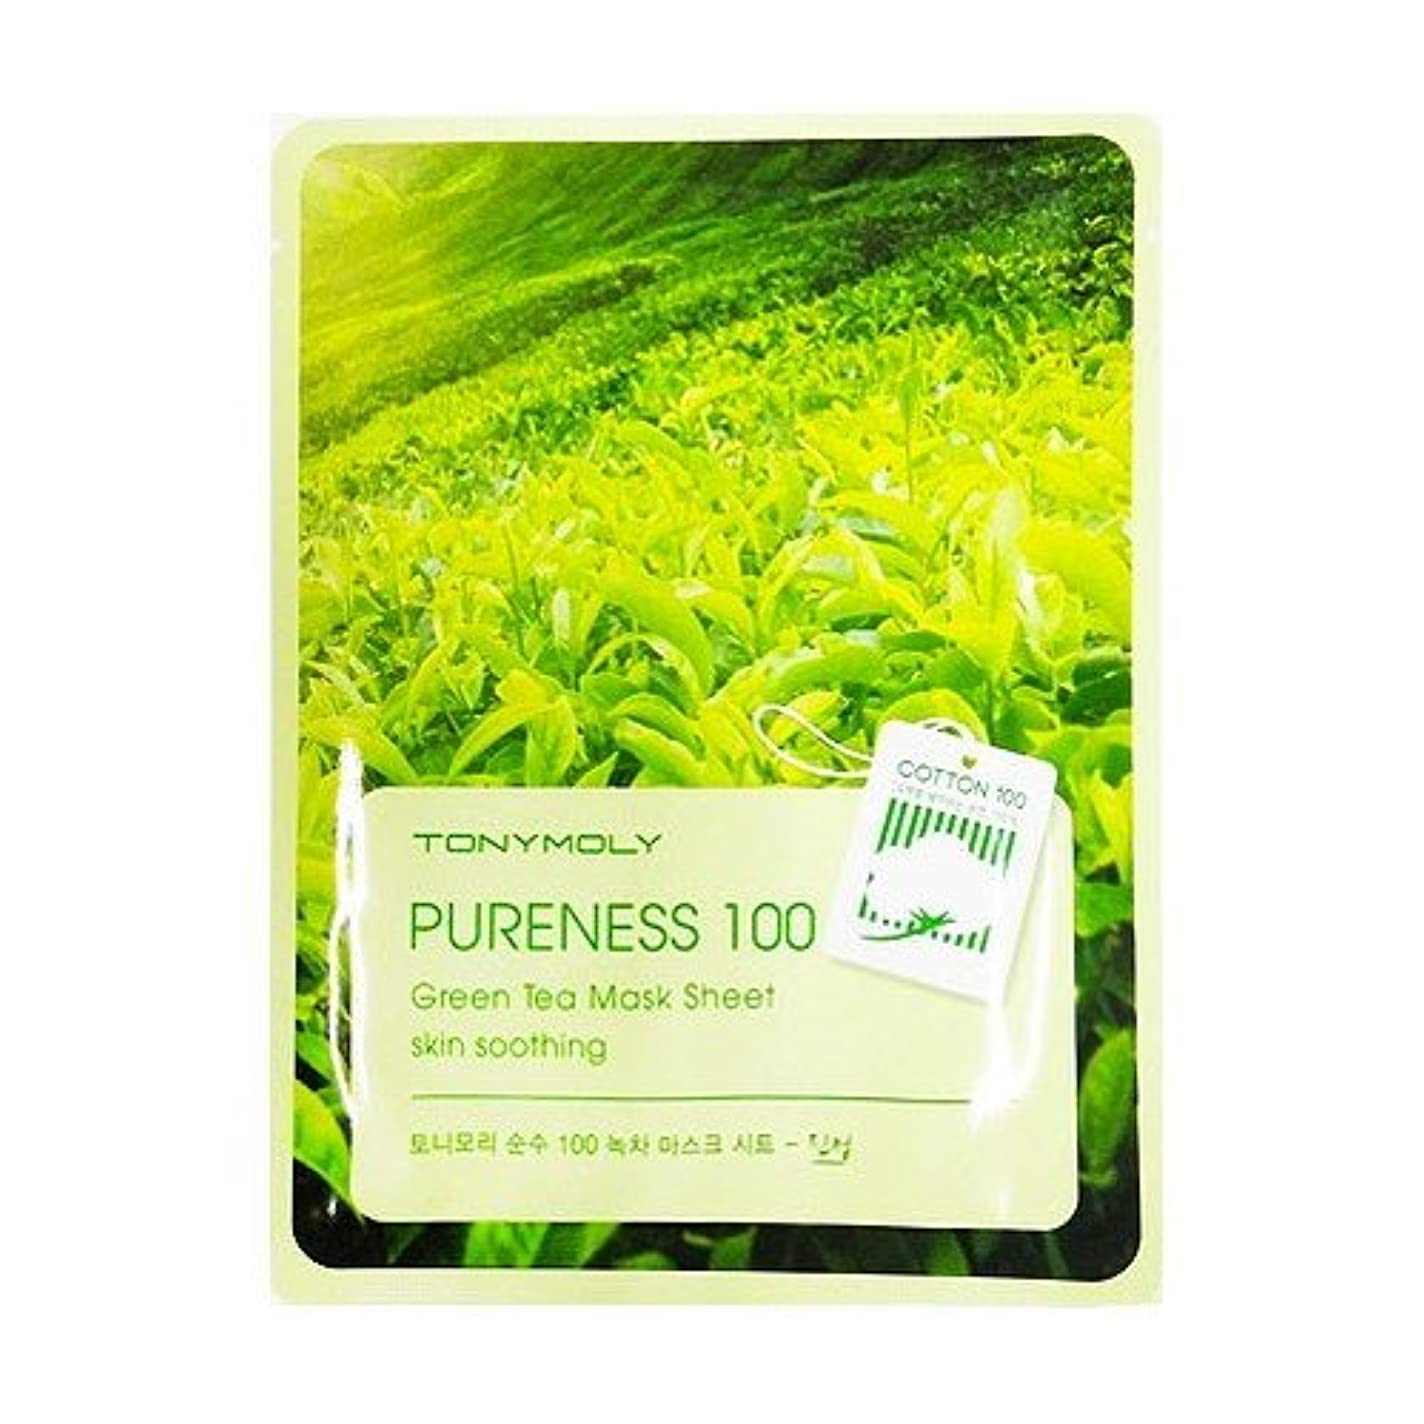 エミュレーション童謡違反(6 Pack) TONYMOLY Pureness 100 Green Tea Mask Sheet Skin Soothing (並行輸入品)